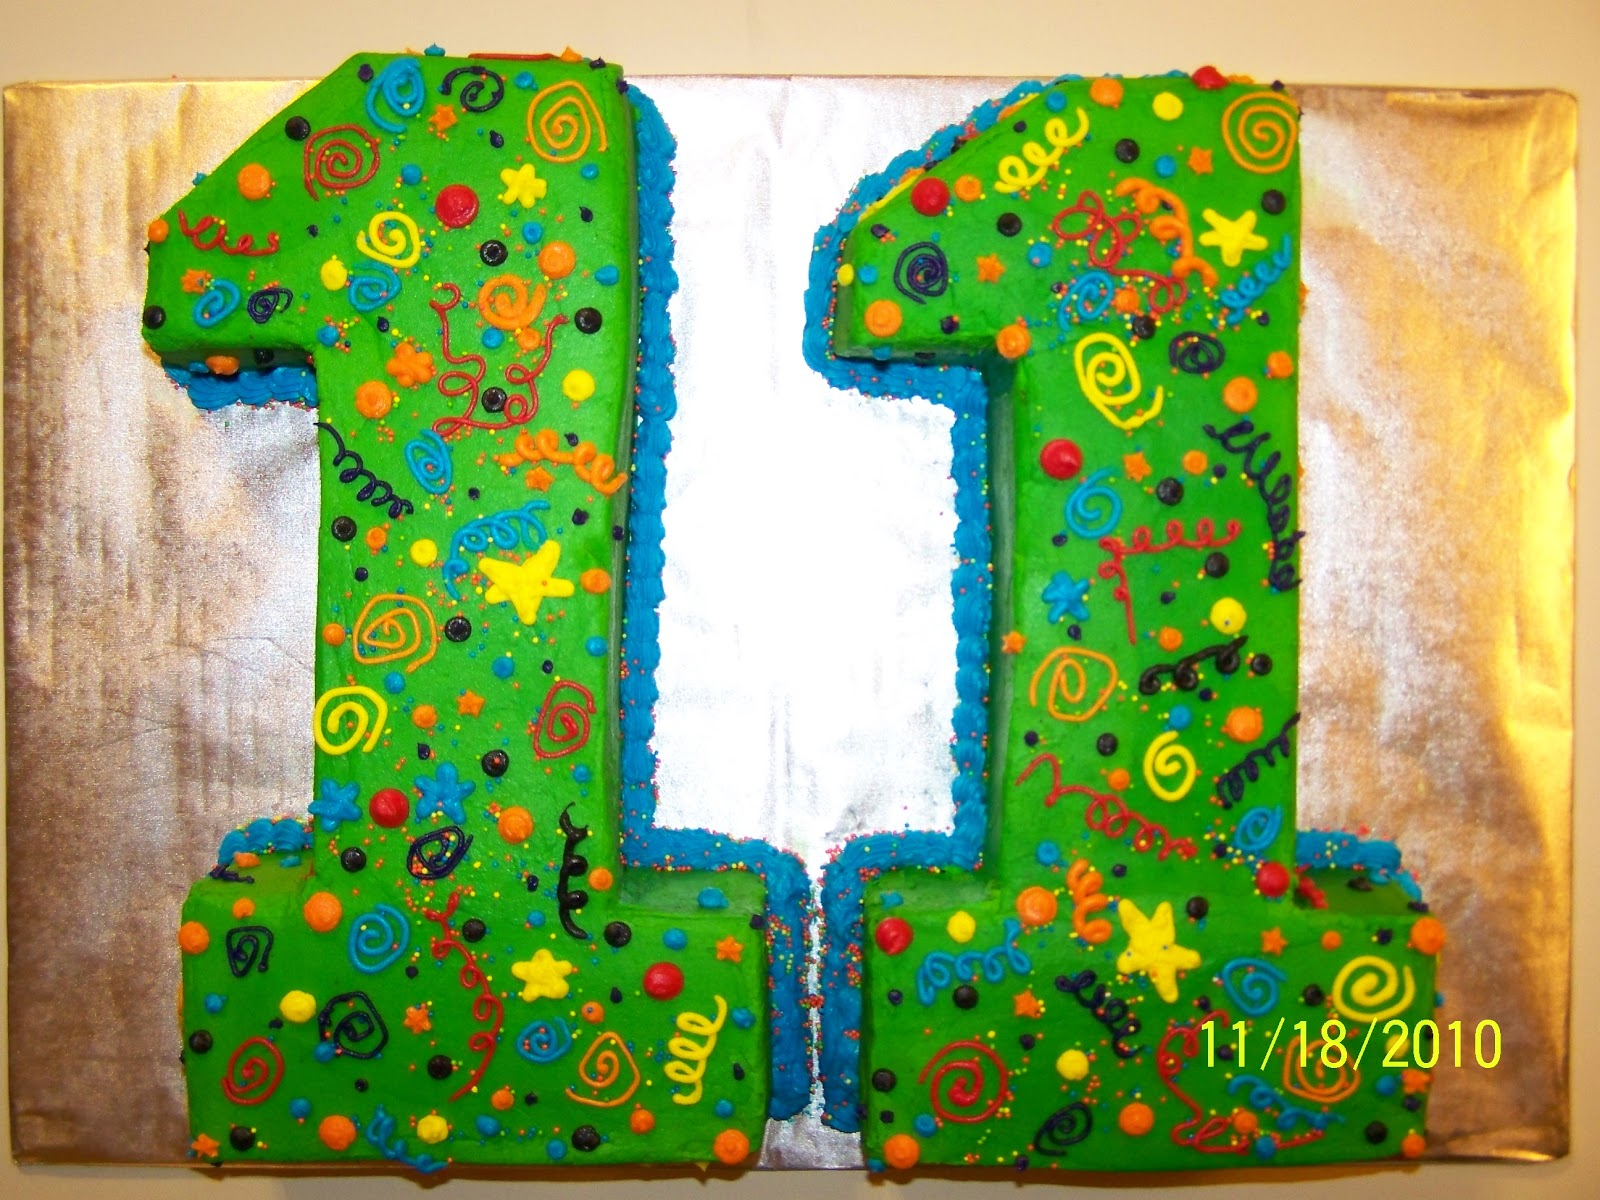 11 year old birthday cakes for boys